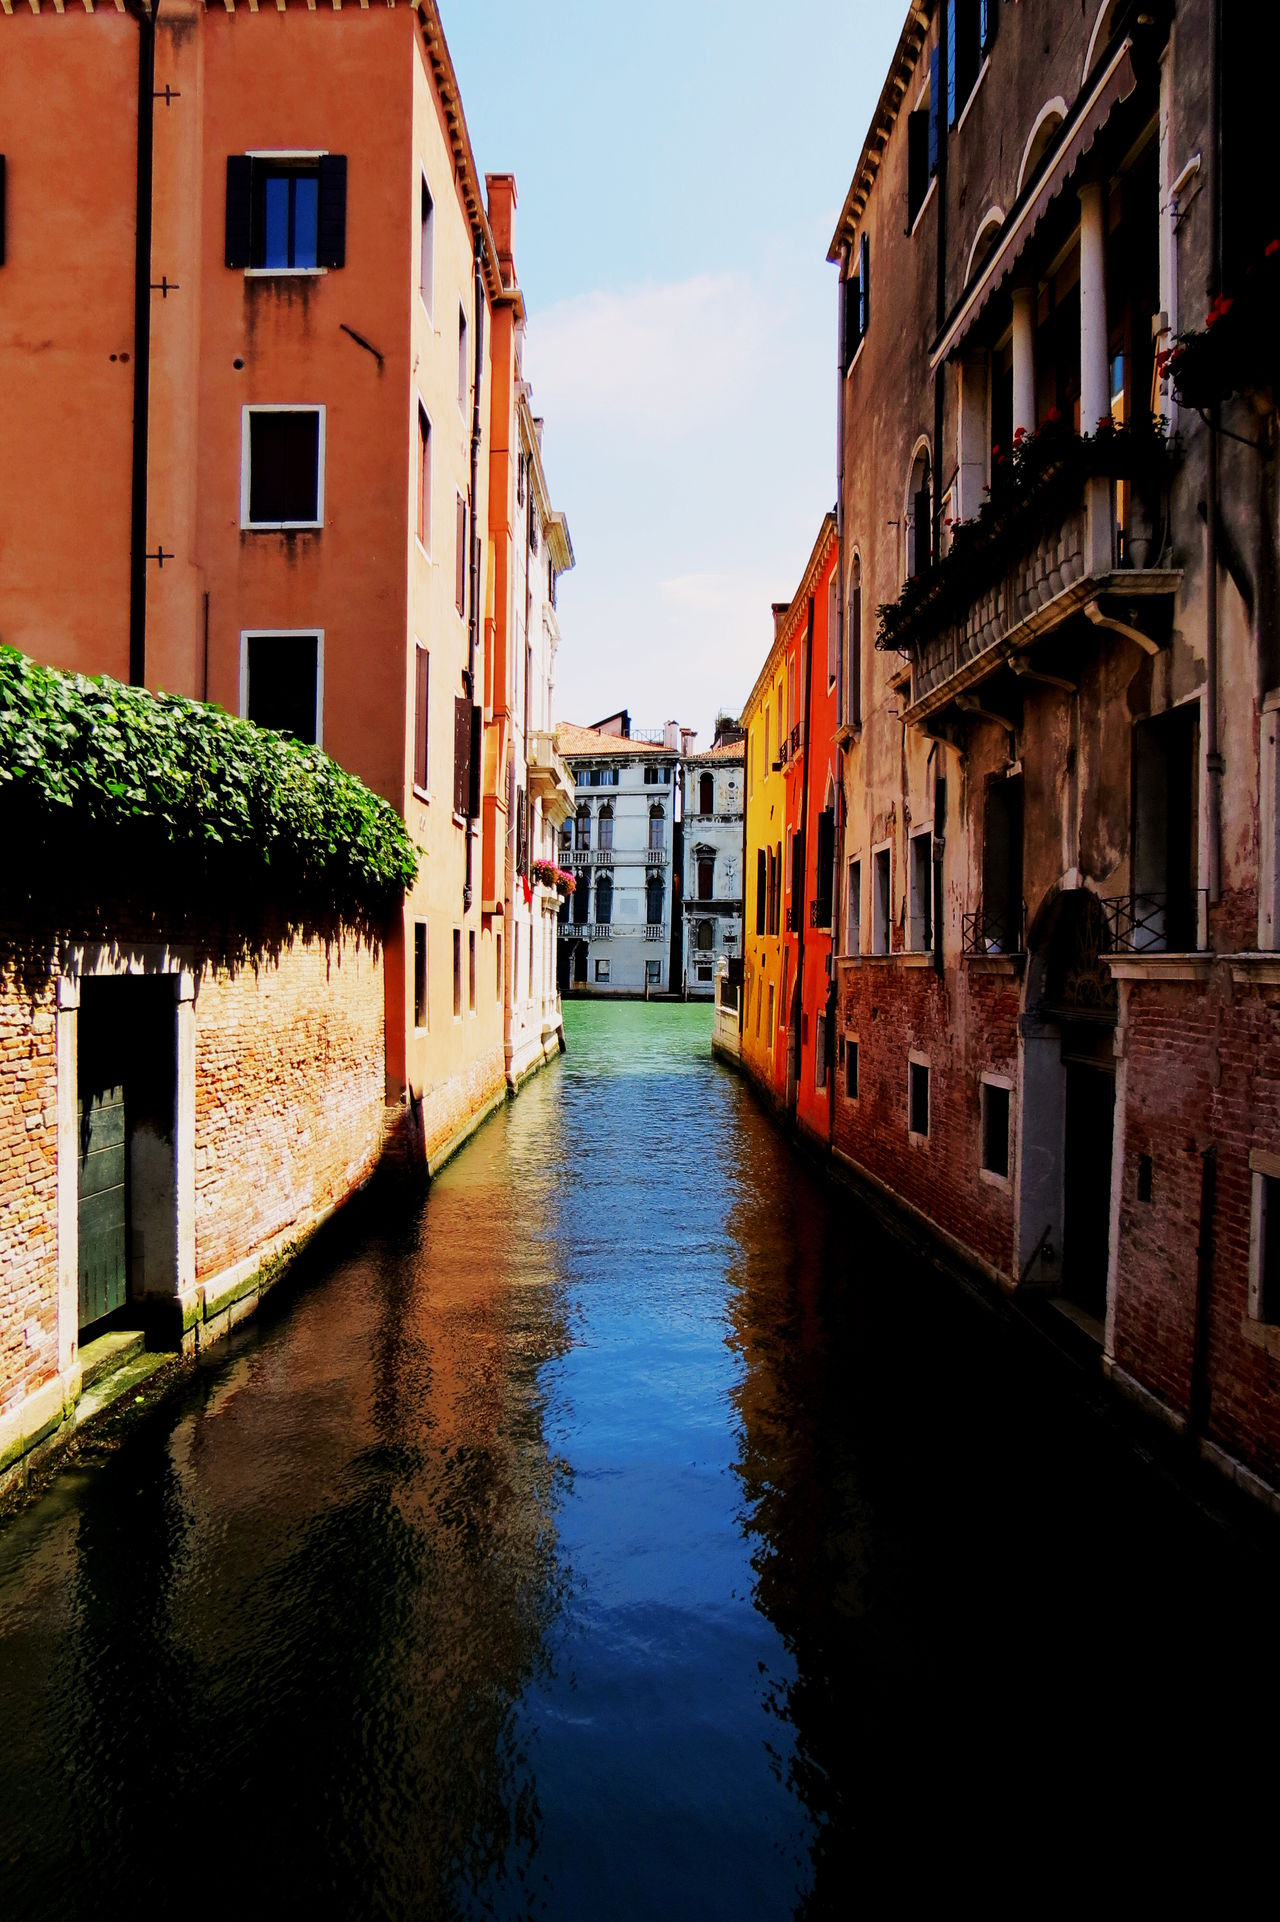 Venezia #venice Panorama Panoramic Squarcio Beautiful Colors Colori Romantic❤ Landscape Amore Love amore, Viaggio Canal Acqua Whather Profound Sun Visione Case Home